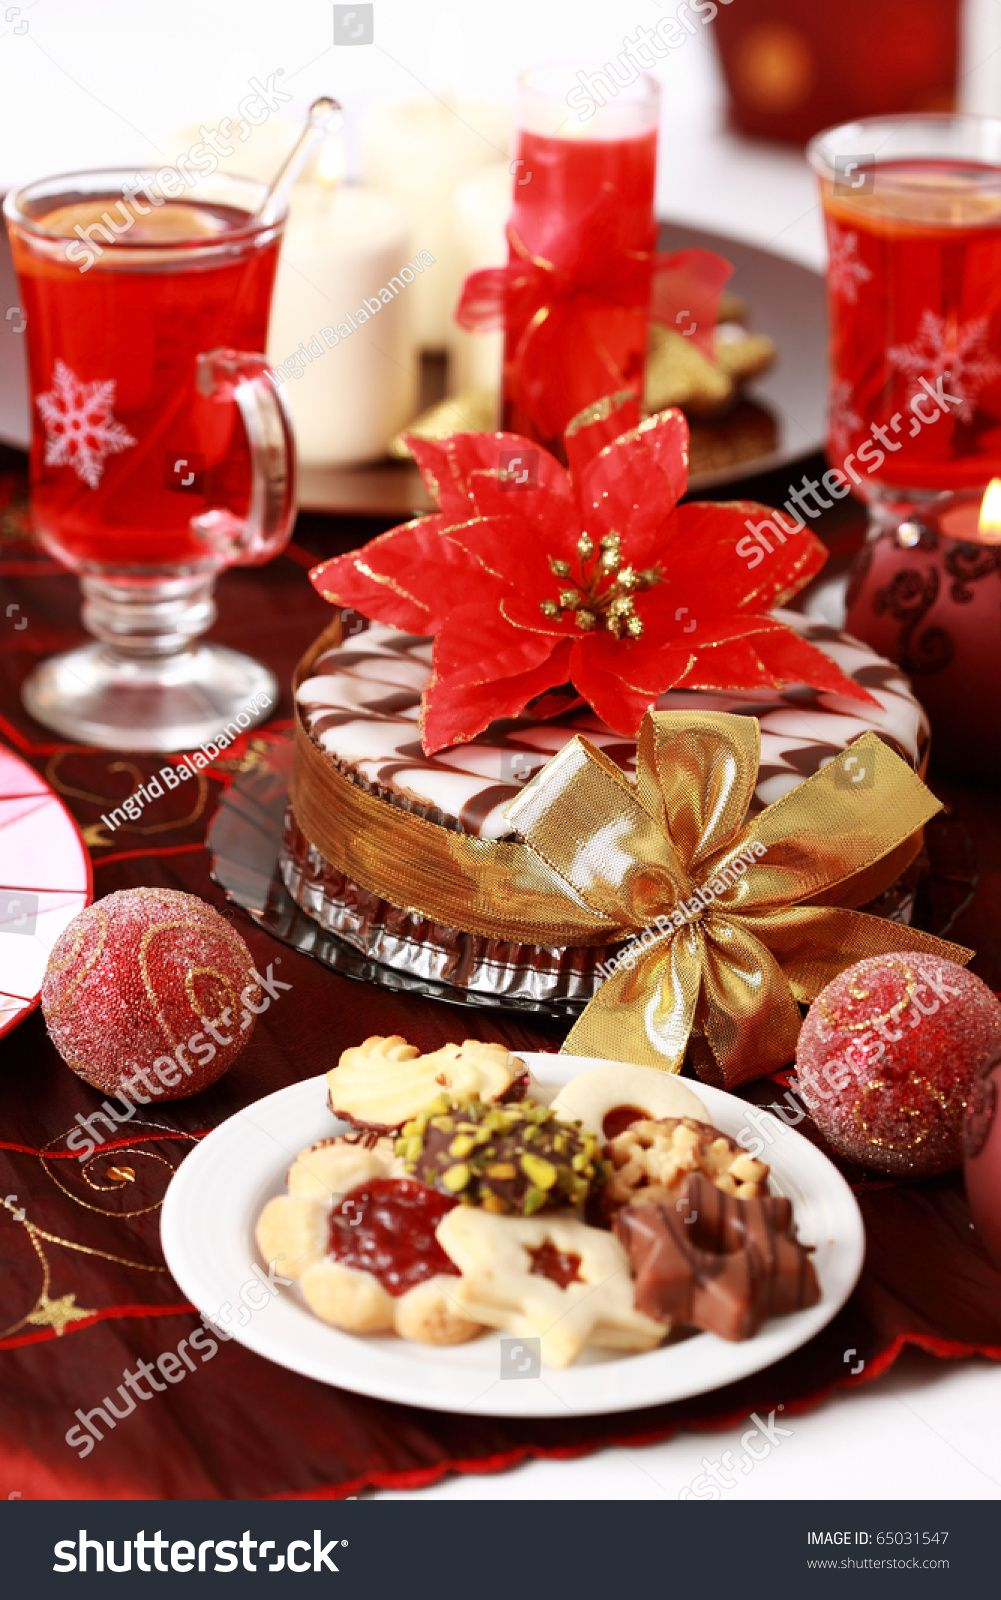 Marchpane Cake With Wine Punch And Cookies For Christmas Ad Ad Wine Cake Marchpane Christmas In 2020 Christmas Stock Photos Christmas Cookies Wine Punch